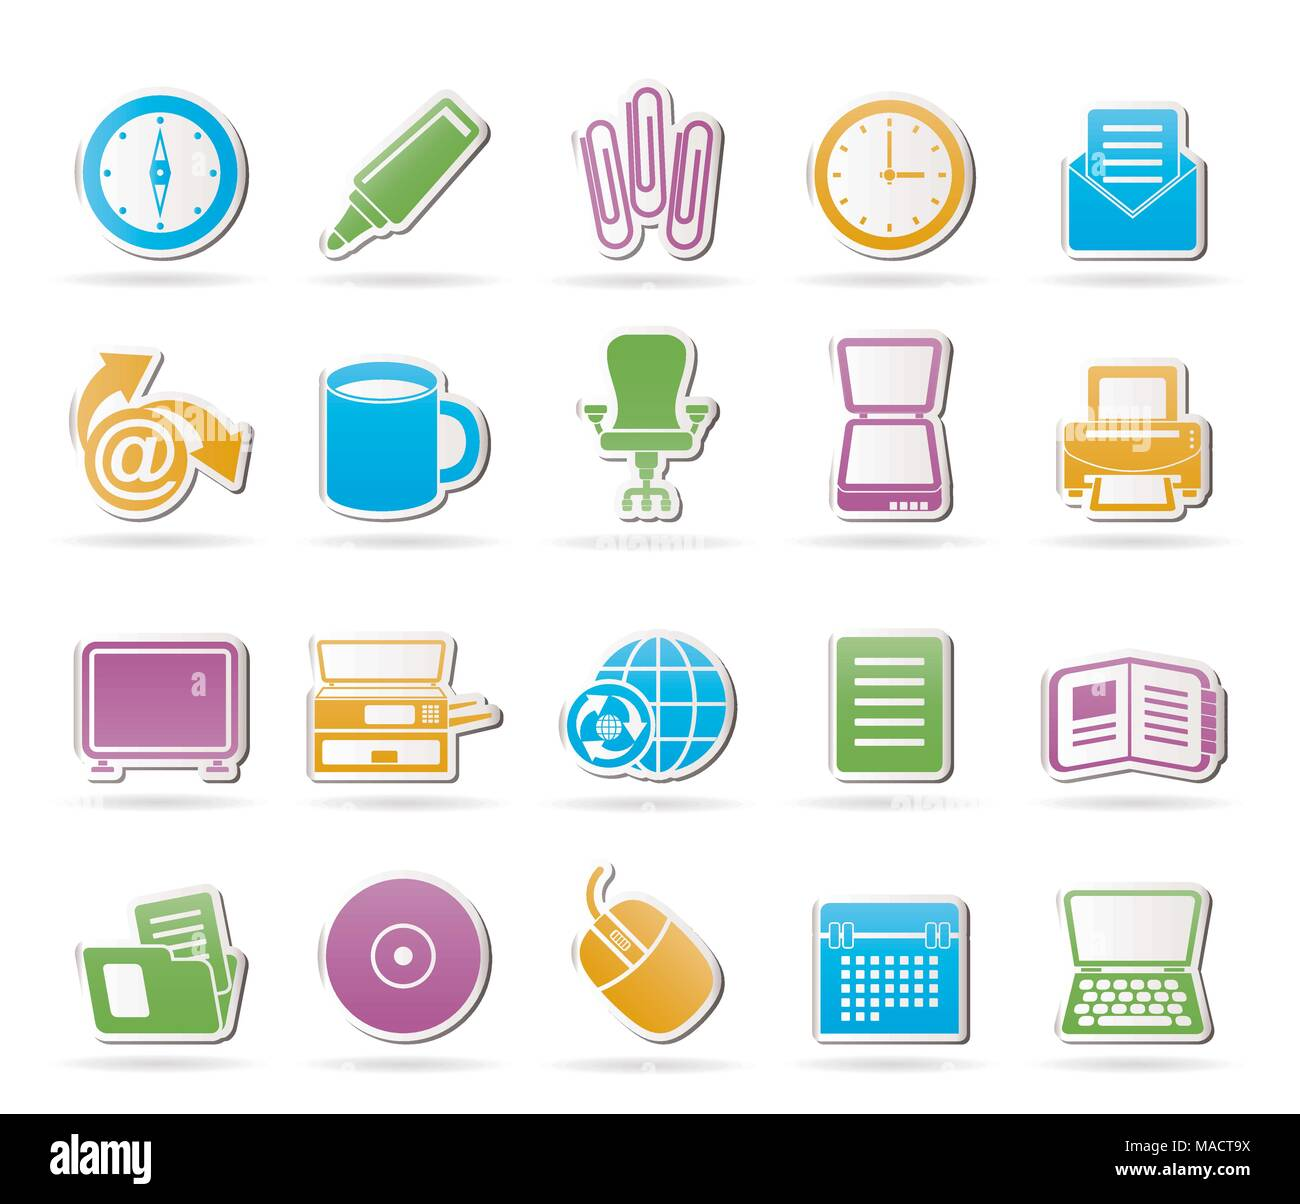 Business and Office tools icons - vector icon set 2 Stock